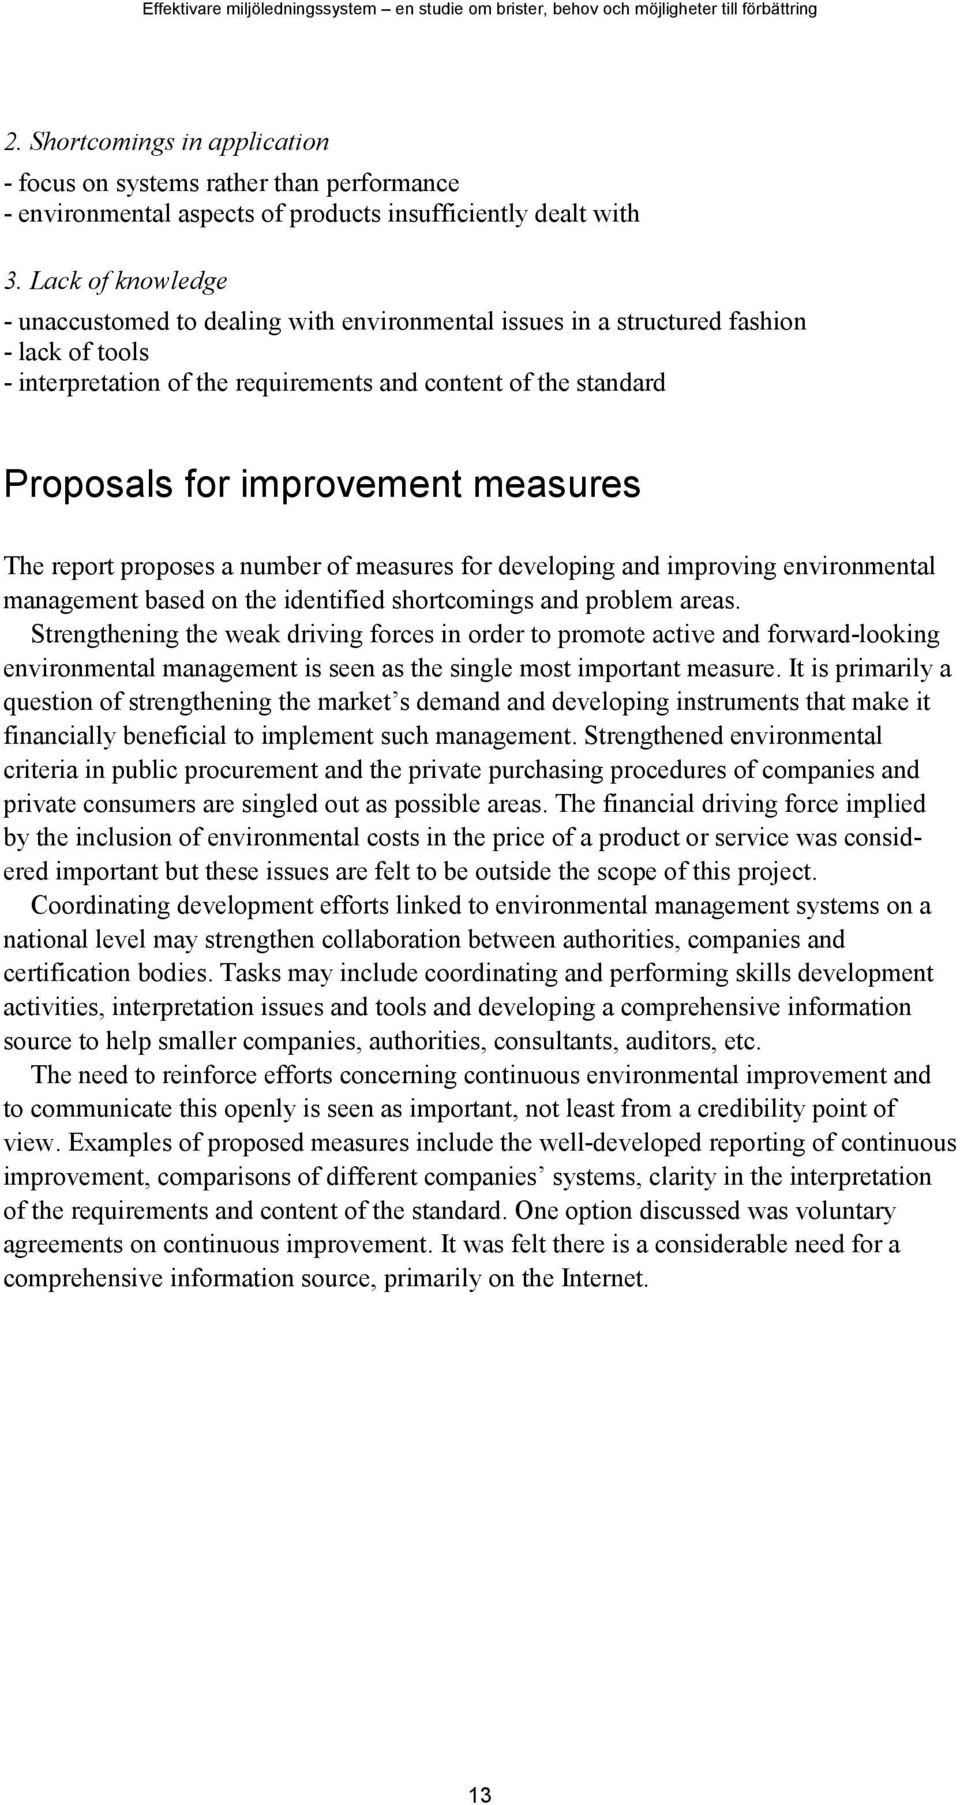 improvement measures The report proposes a number of measures for developing and improving environmental management based on the identified shortcomings and problem areas.